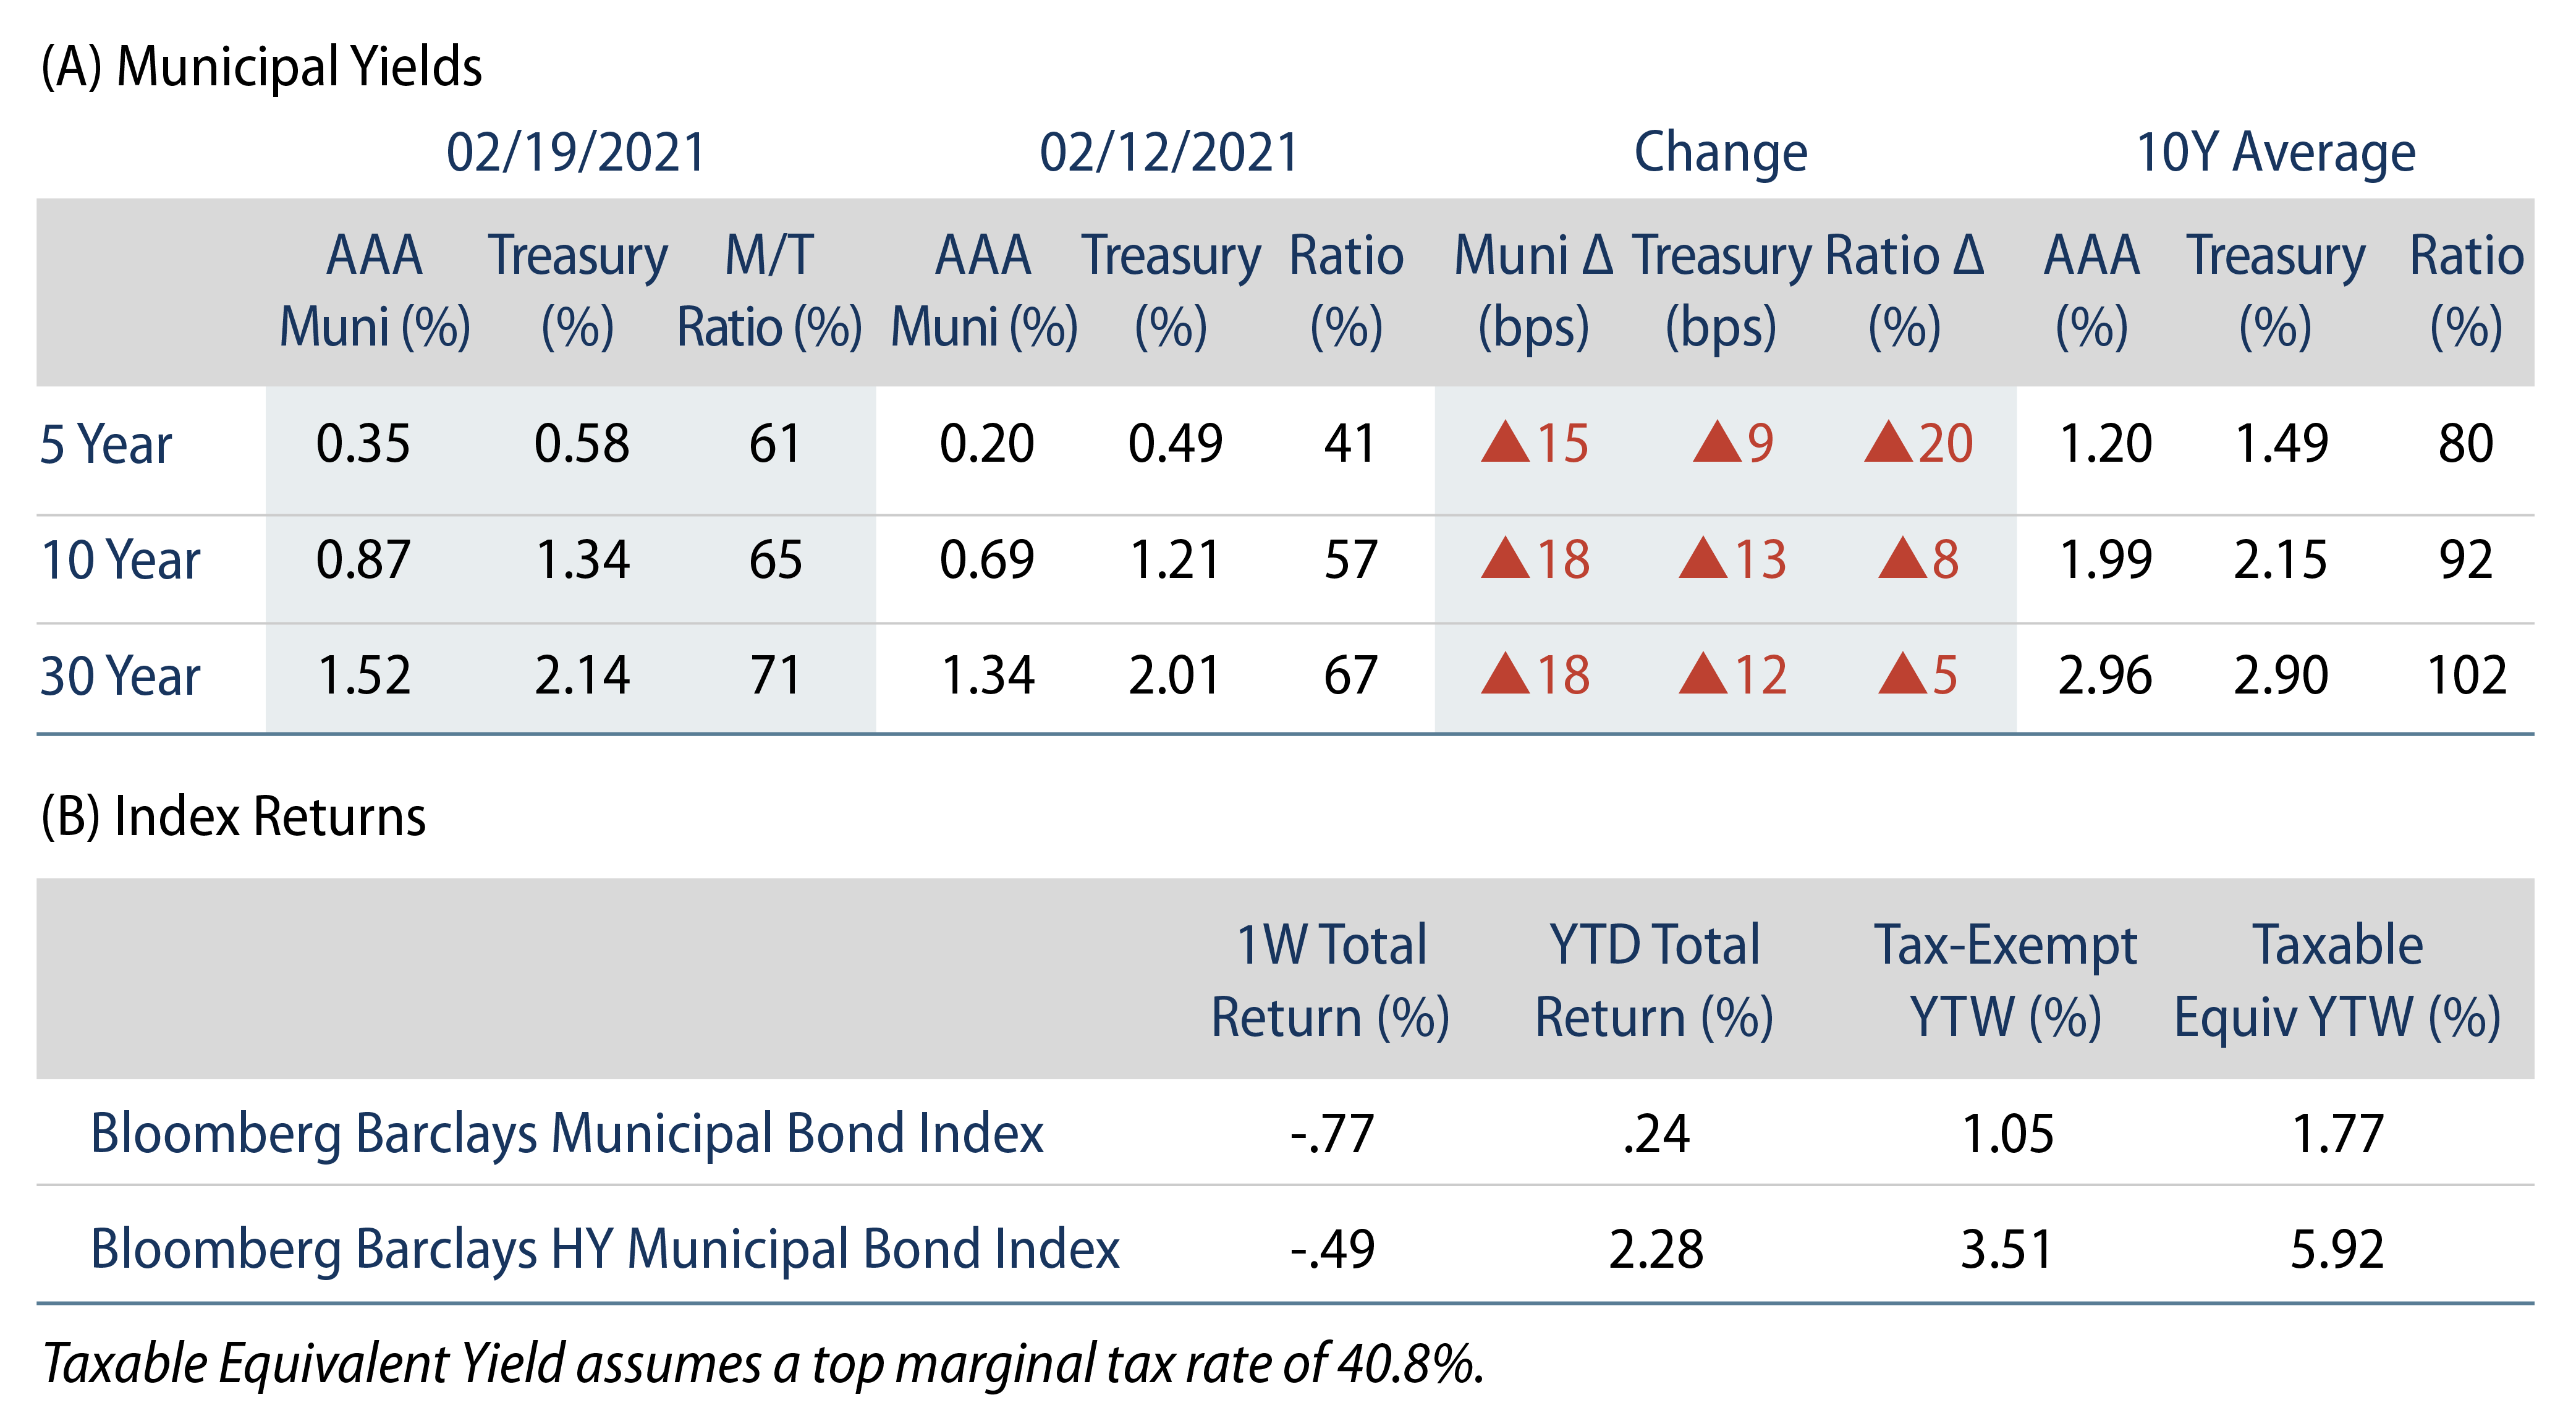 Explore Municipal Bond Yields and Index Return